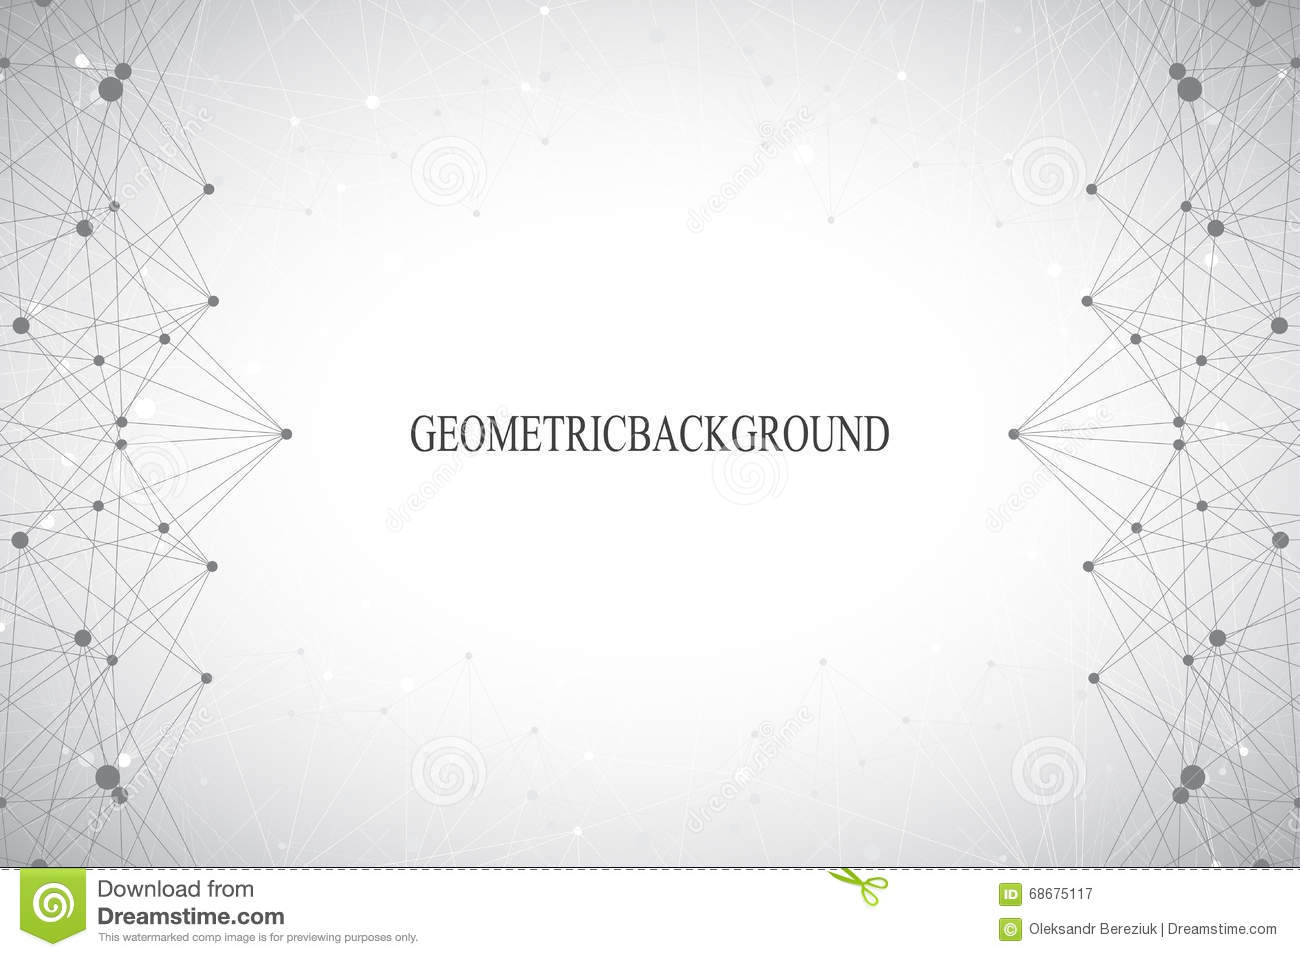 Geometric abstract grey background with connected lines and dots. Medicine, science, technology backdrop for your design